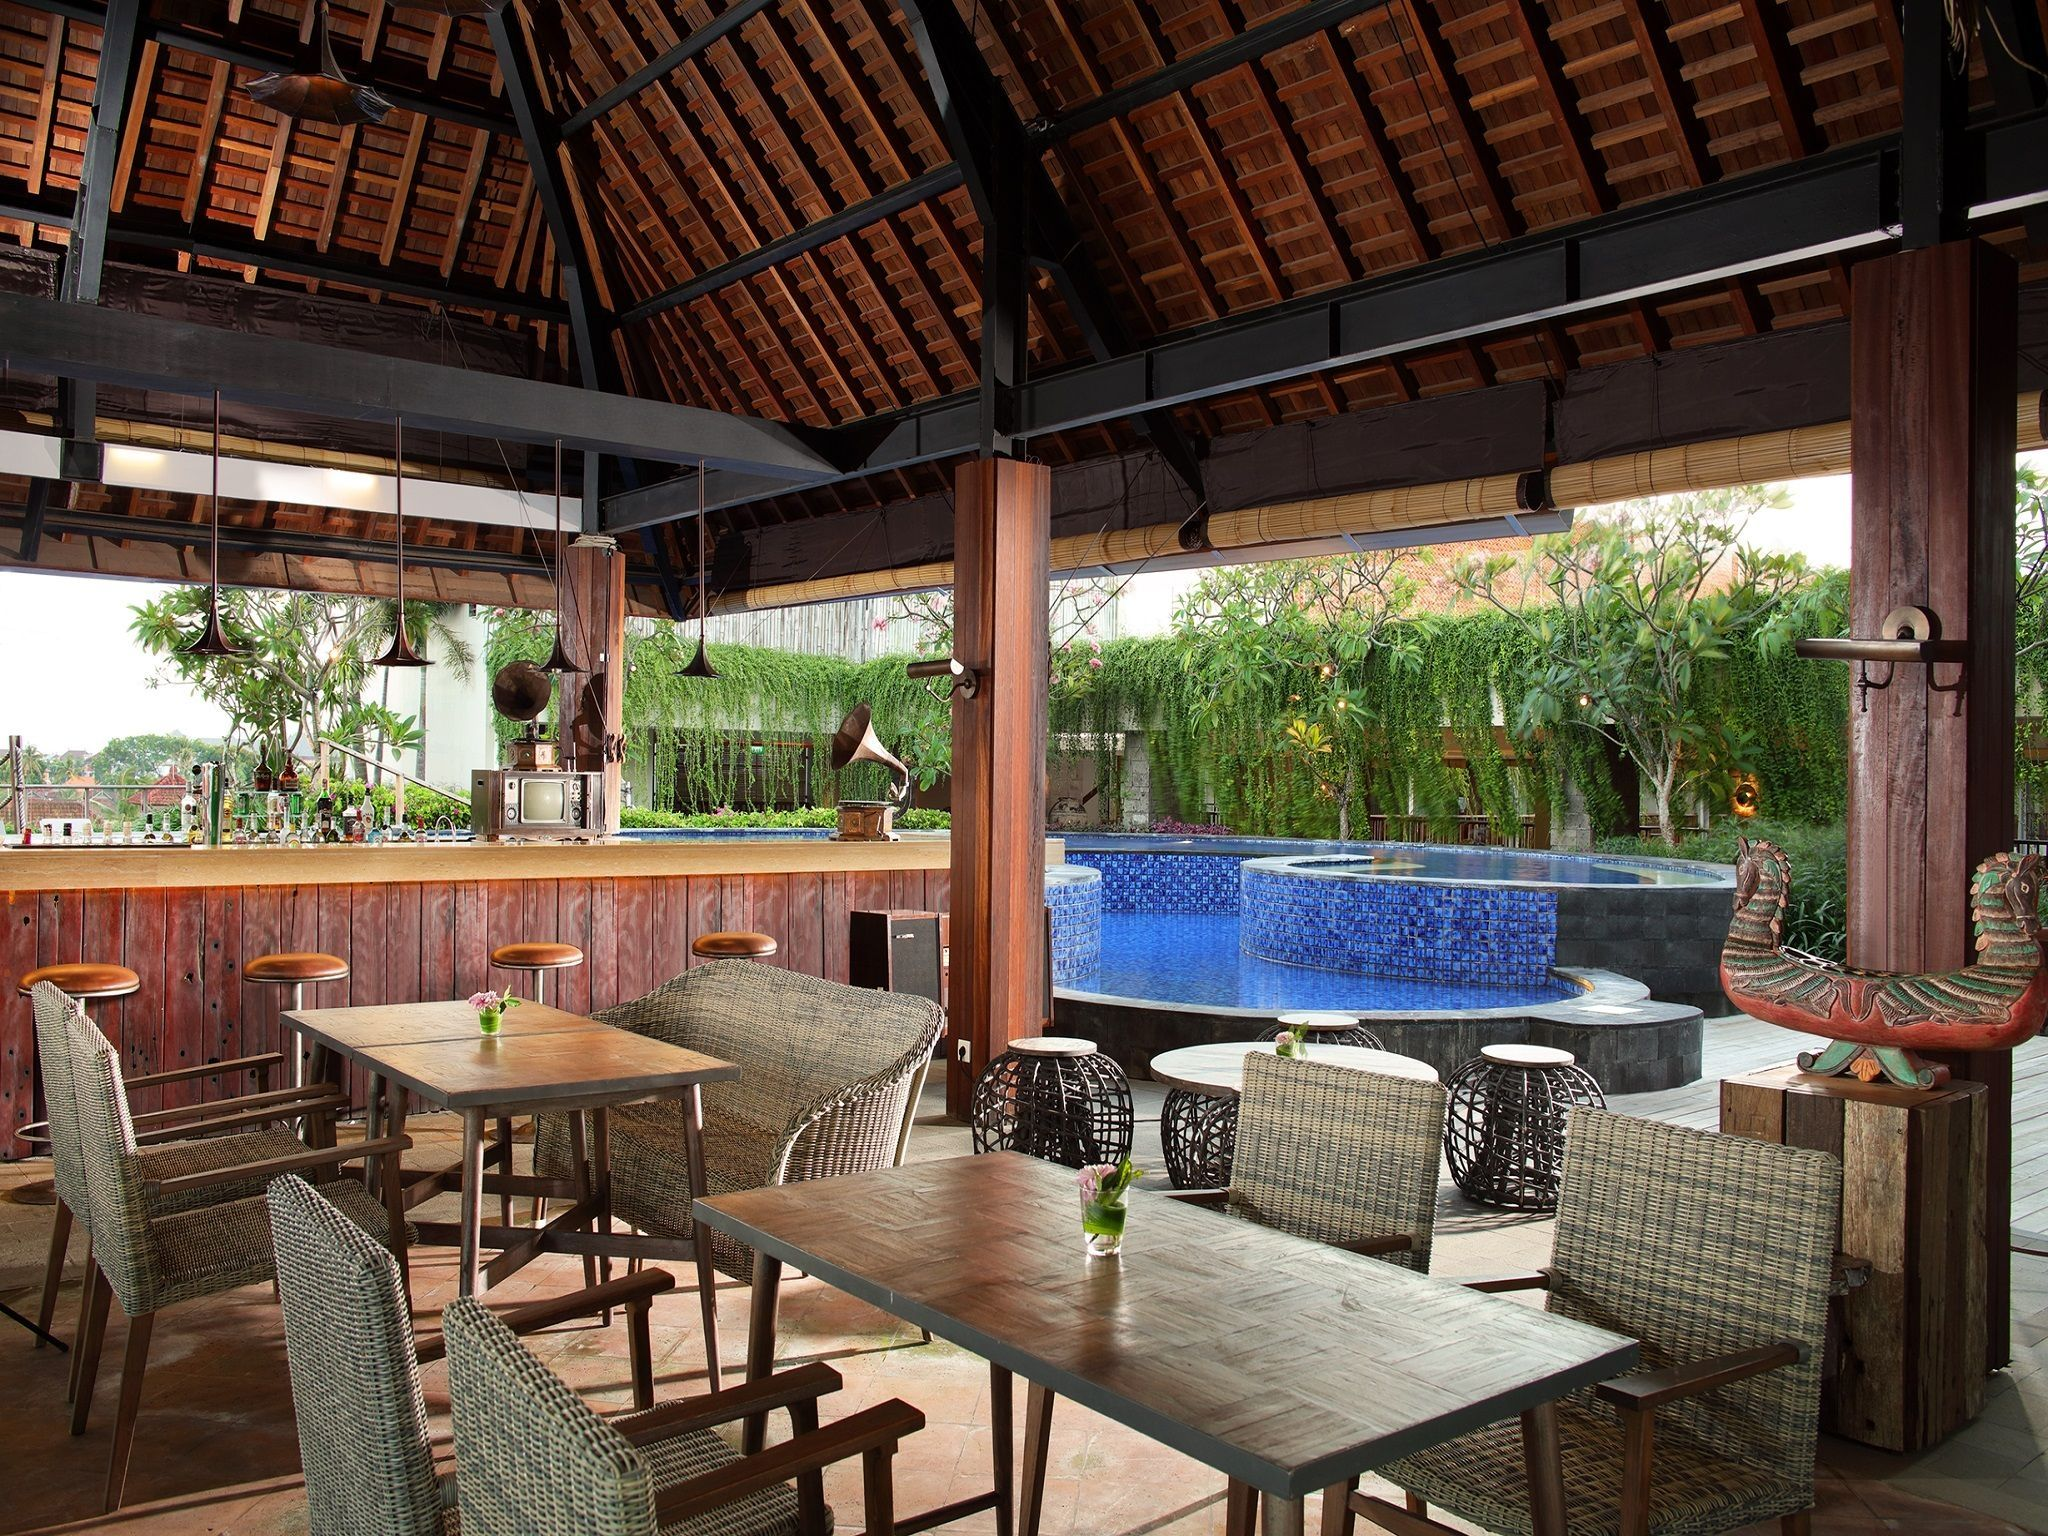 Vertigo - Dining at Four Points by Sheraton Bali, Kuta